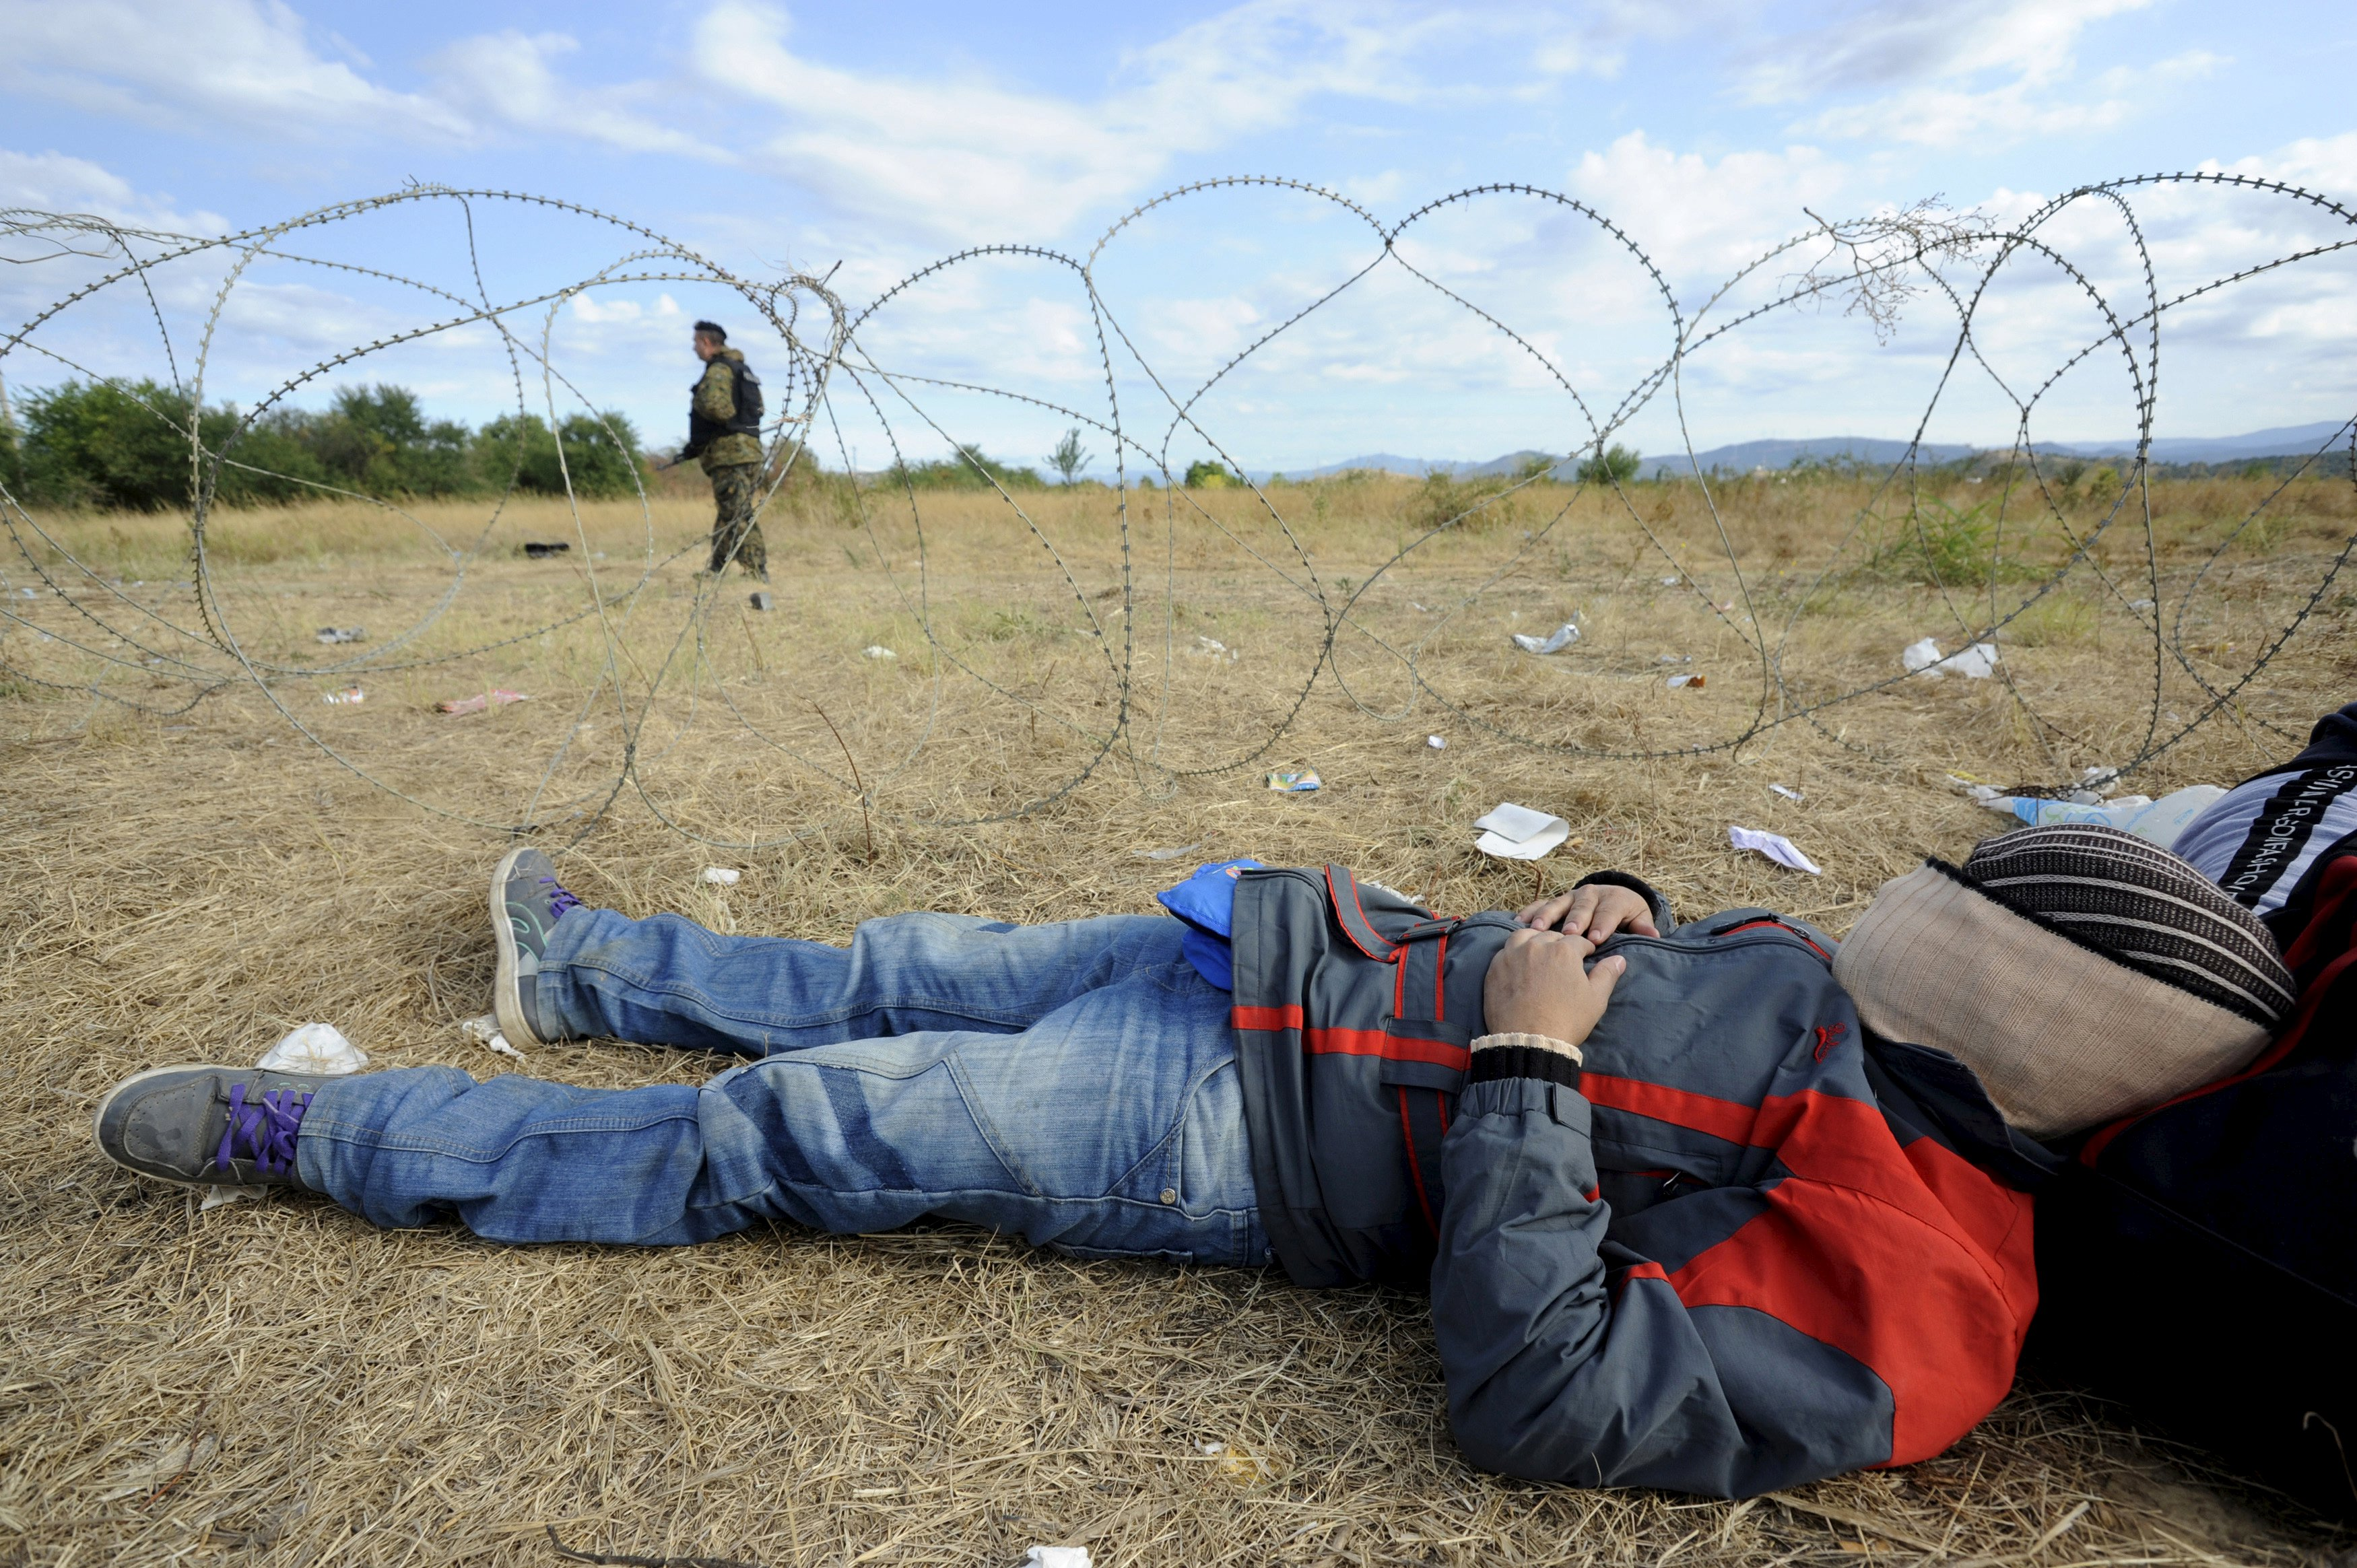 With tear gas and razor wire, Macedonia tries to stem